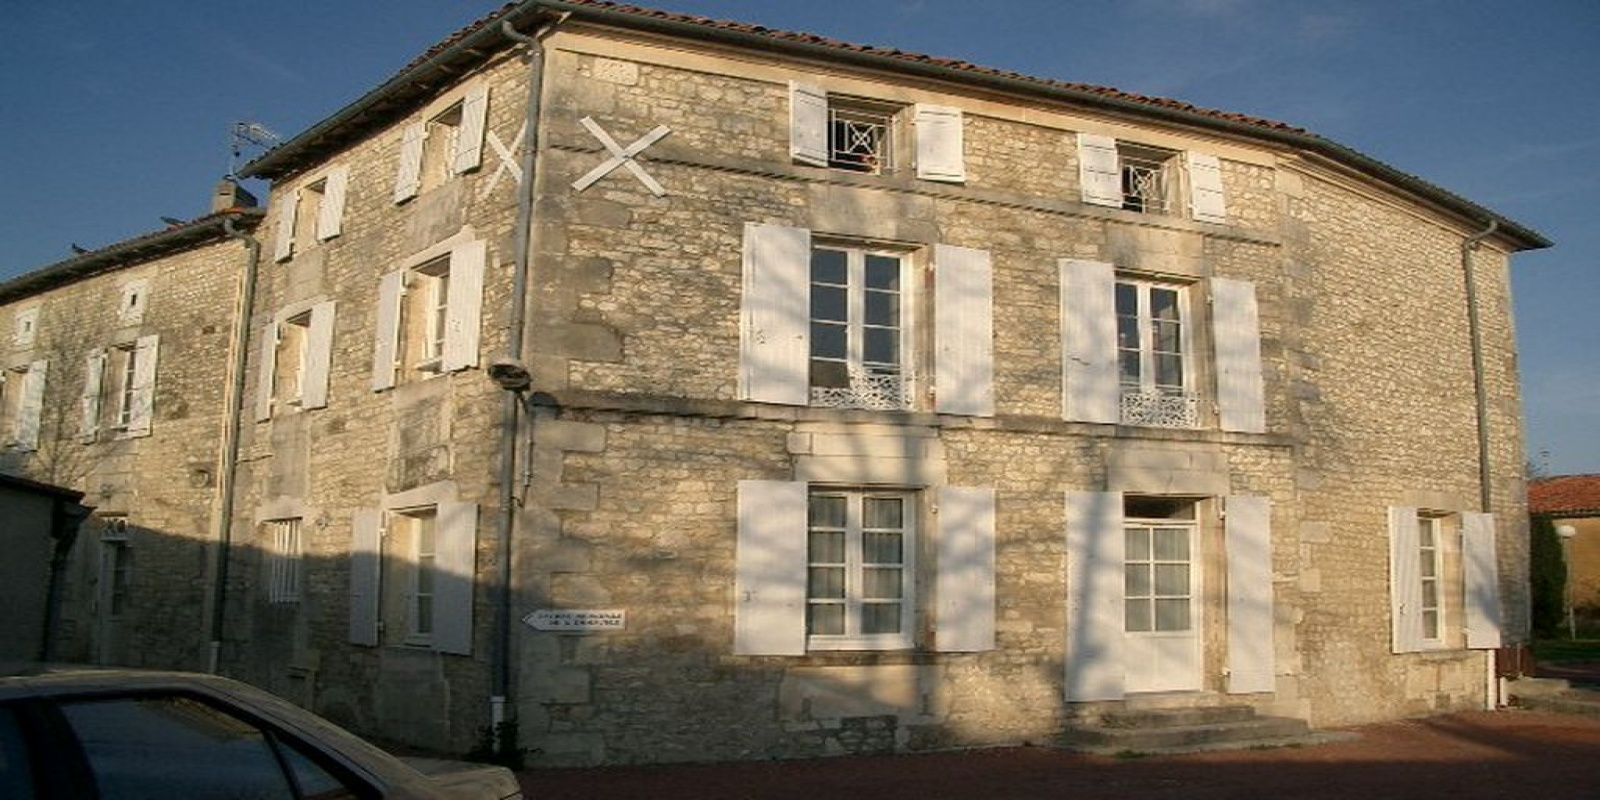 Appartement, A louer, Listing ID undefined, Saint Jean d\'Angely, France, 17400,